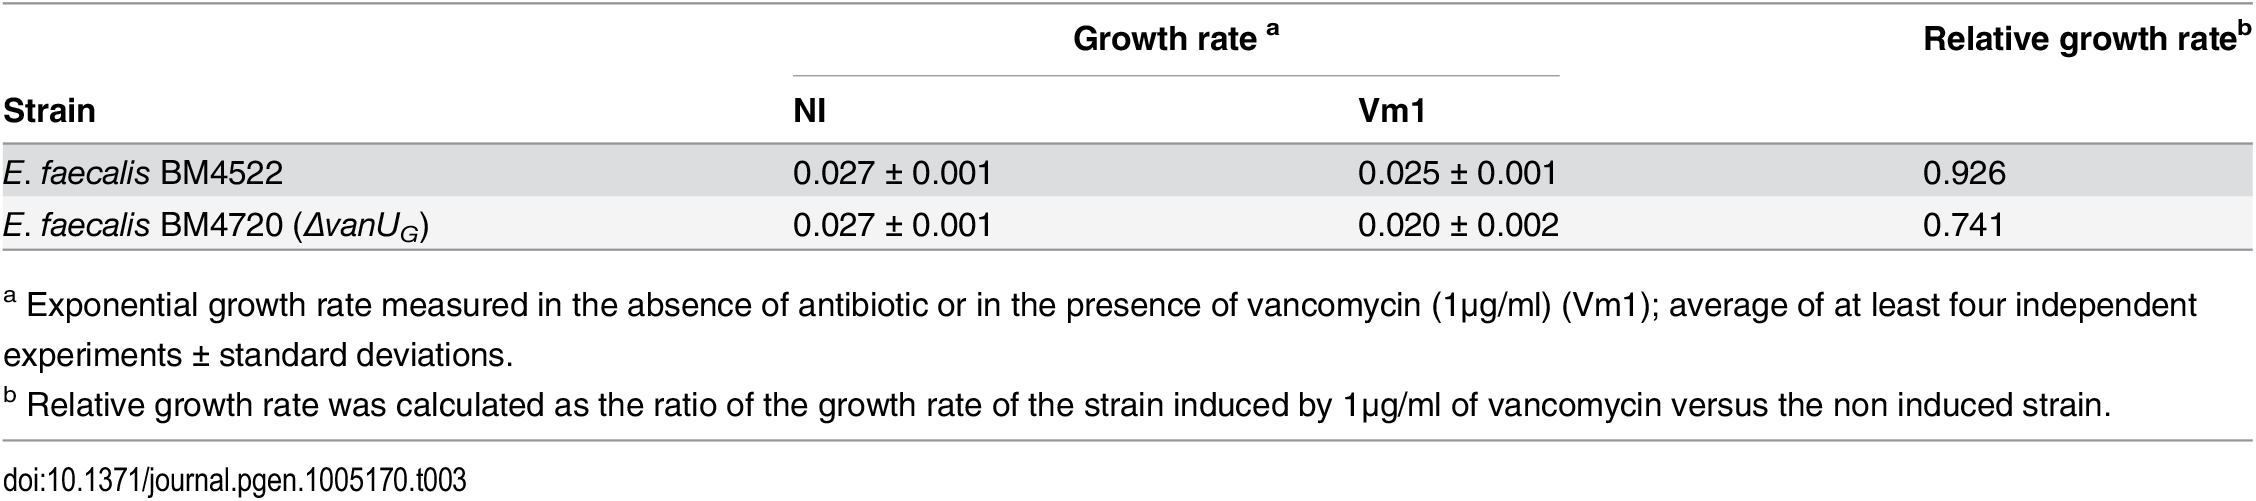 Growth rate.